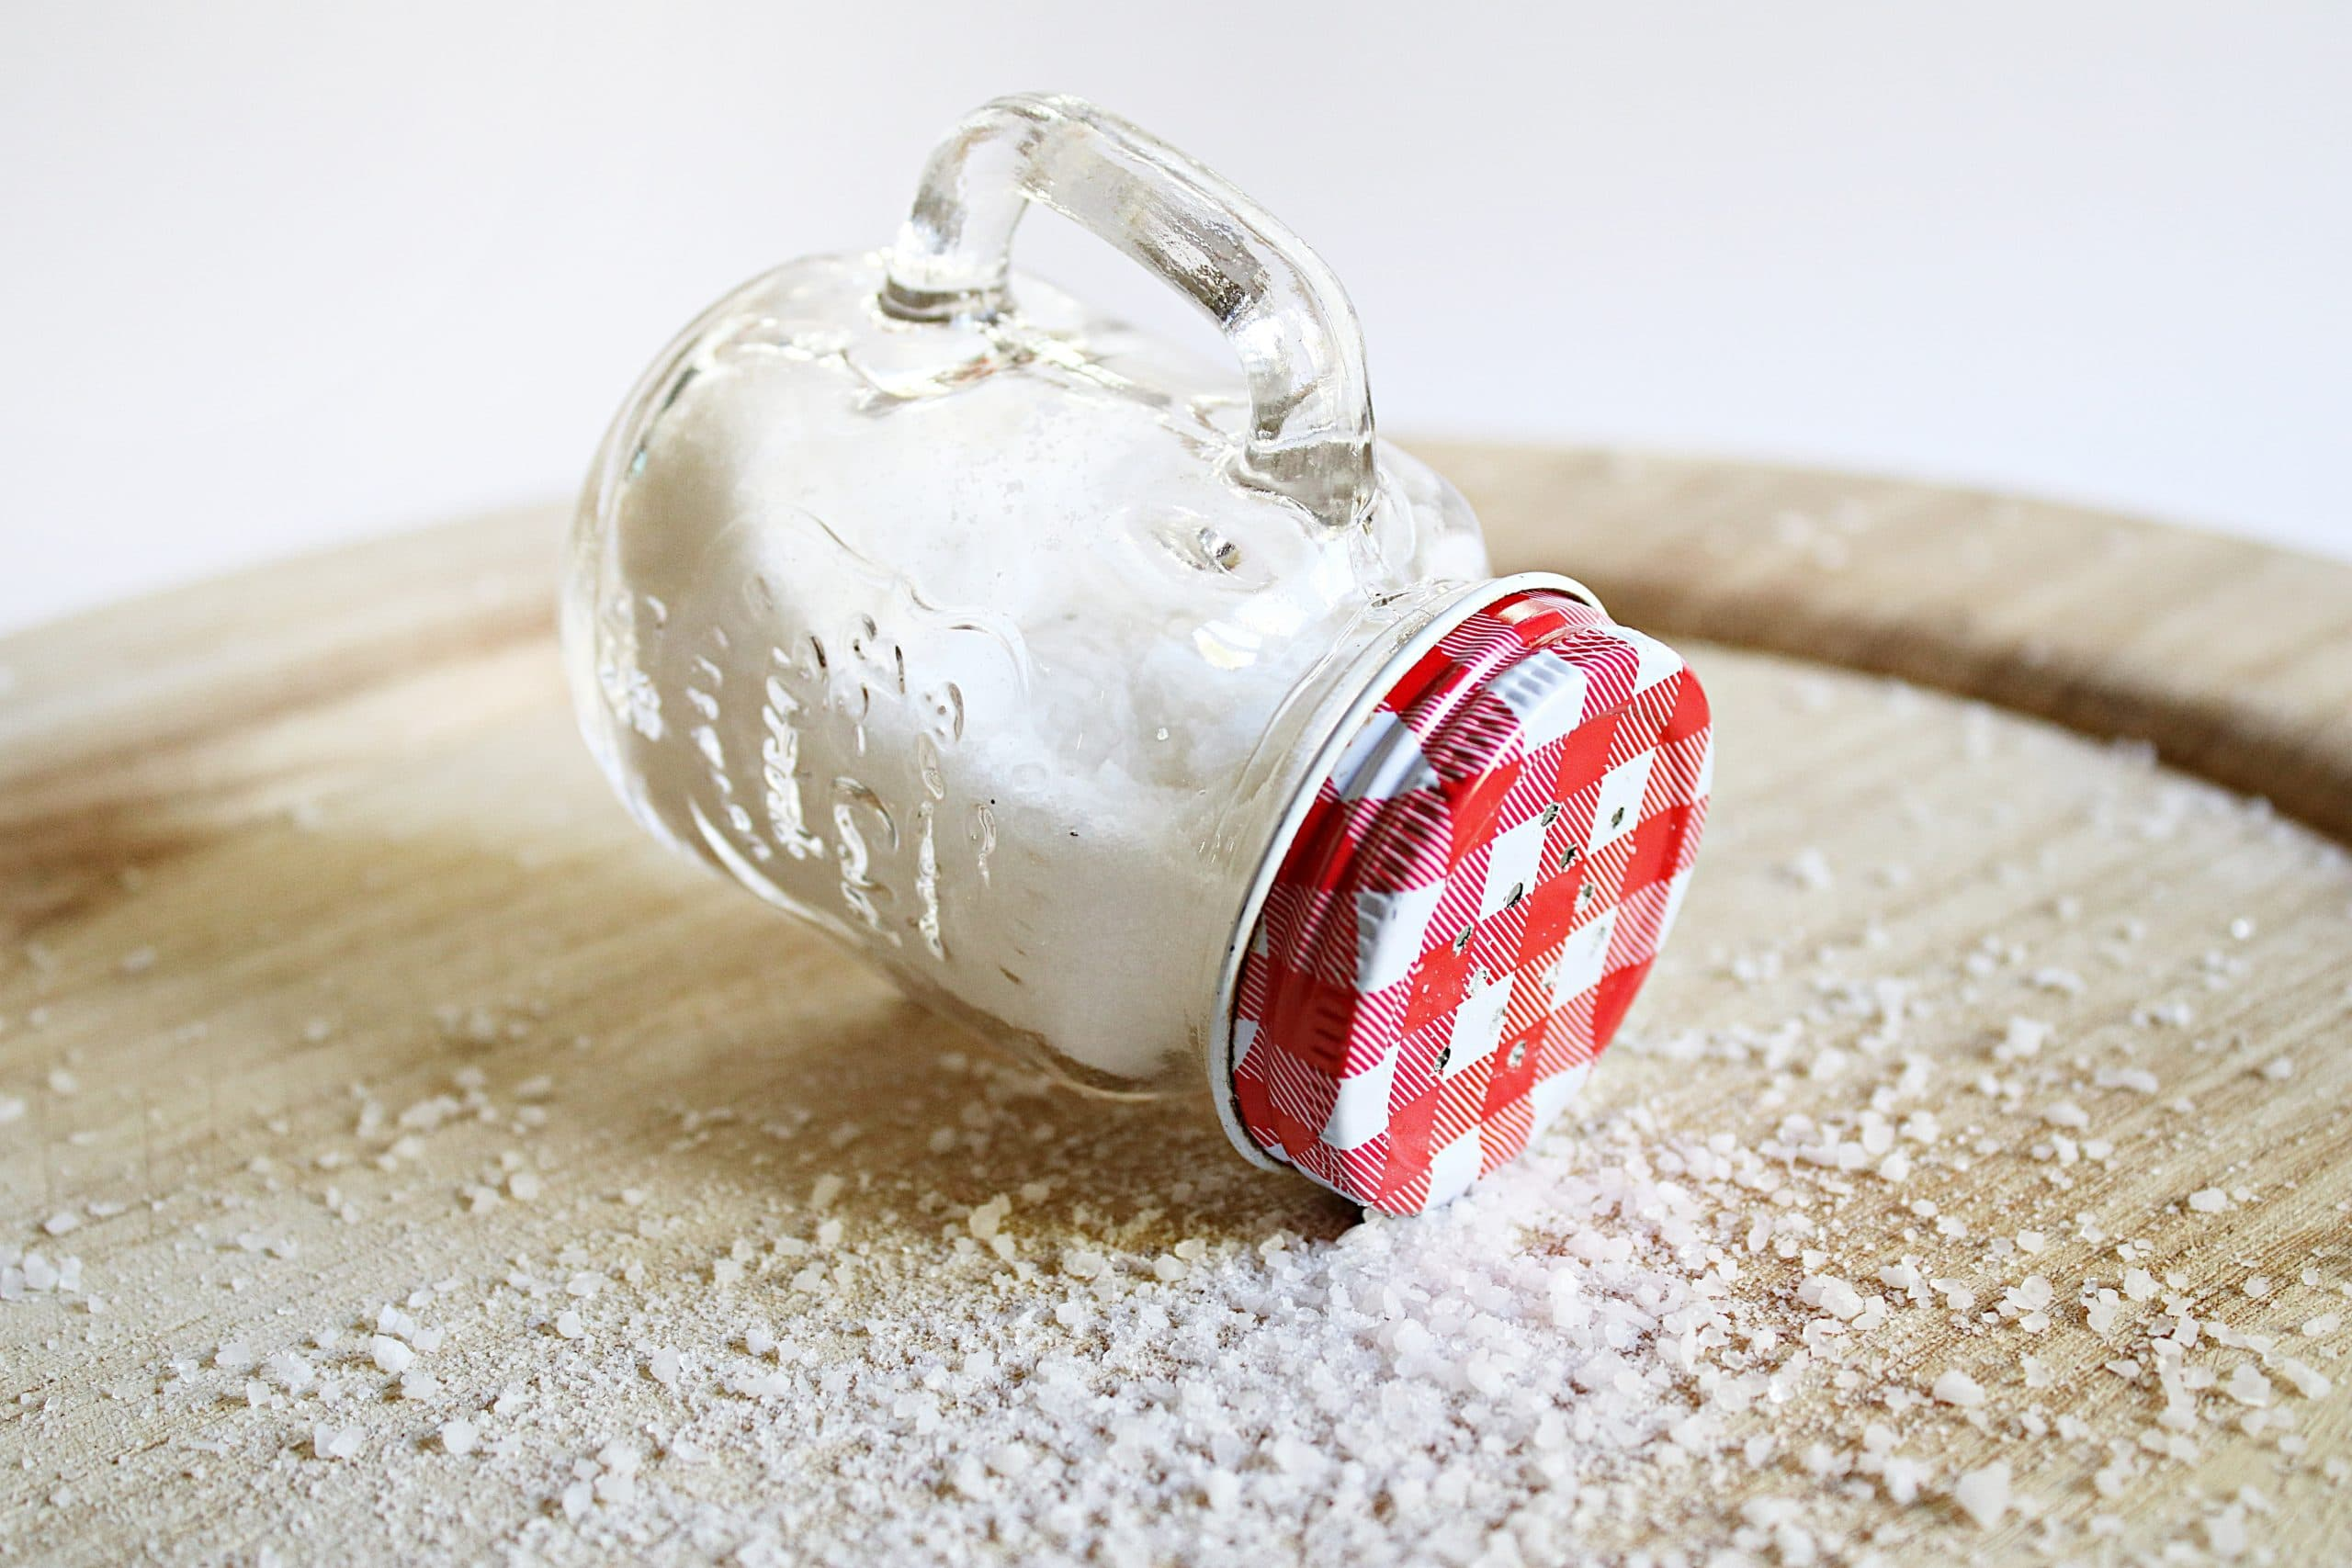 A glass container of salt with a red lid, lying on its side on a wooden board, with salt crystals sprinkled around